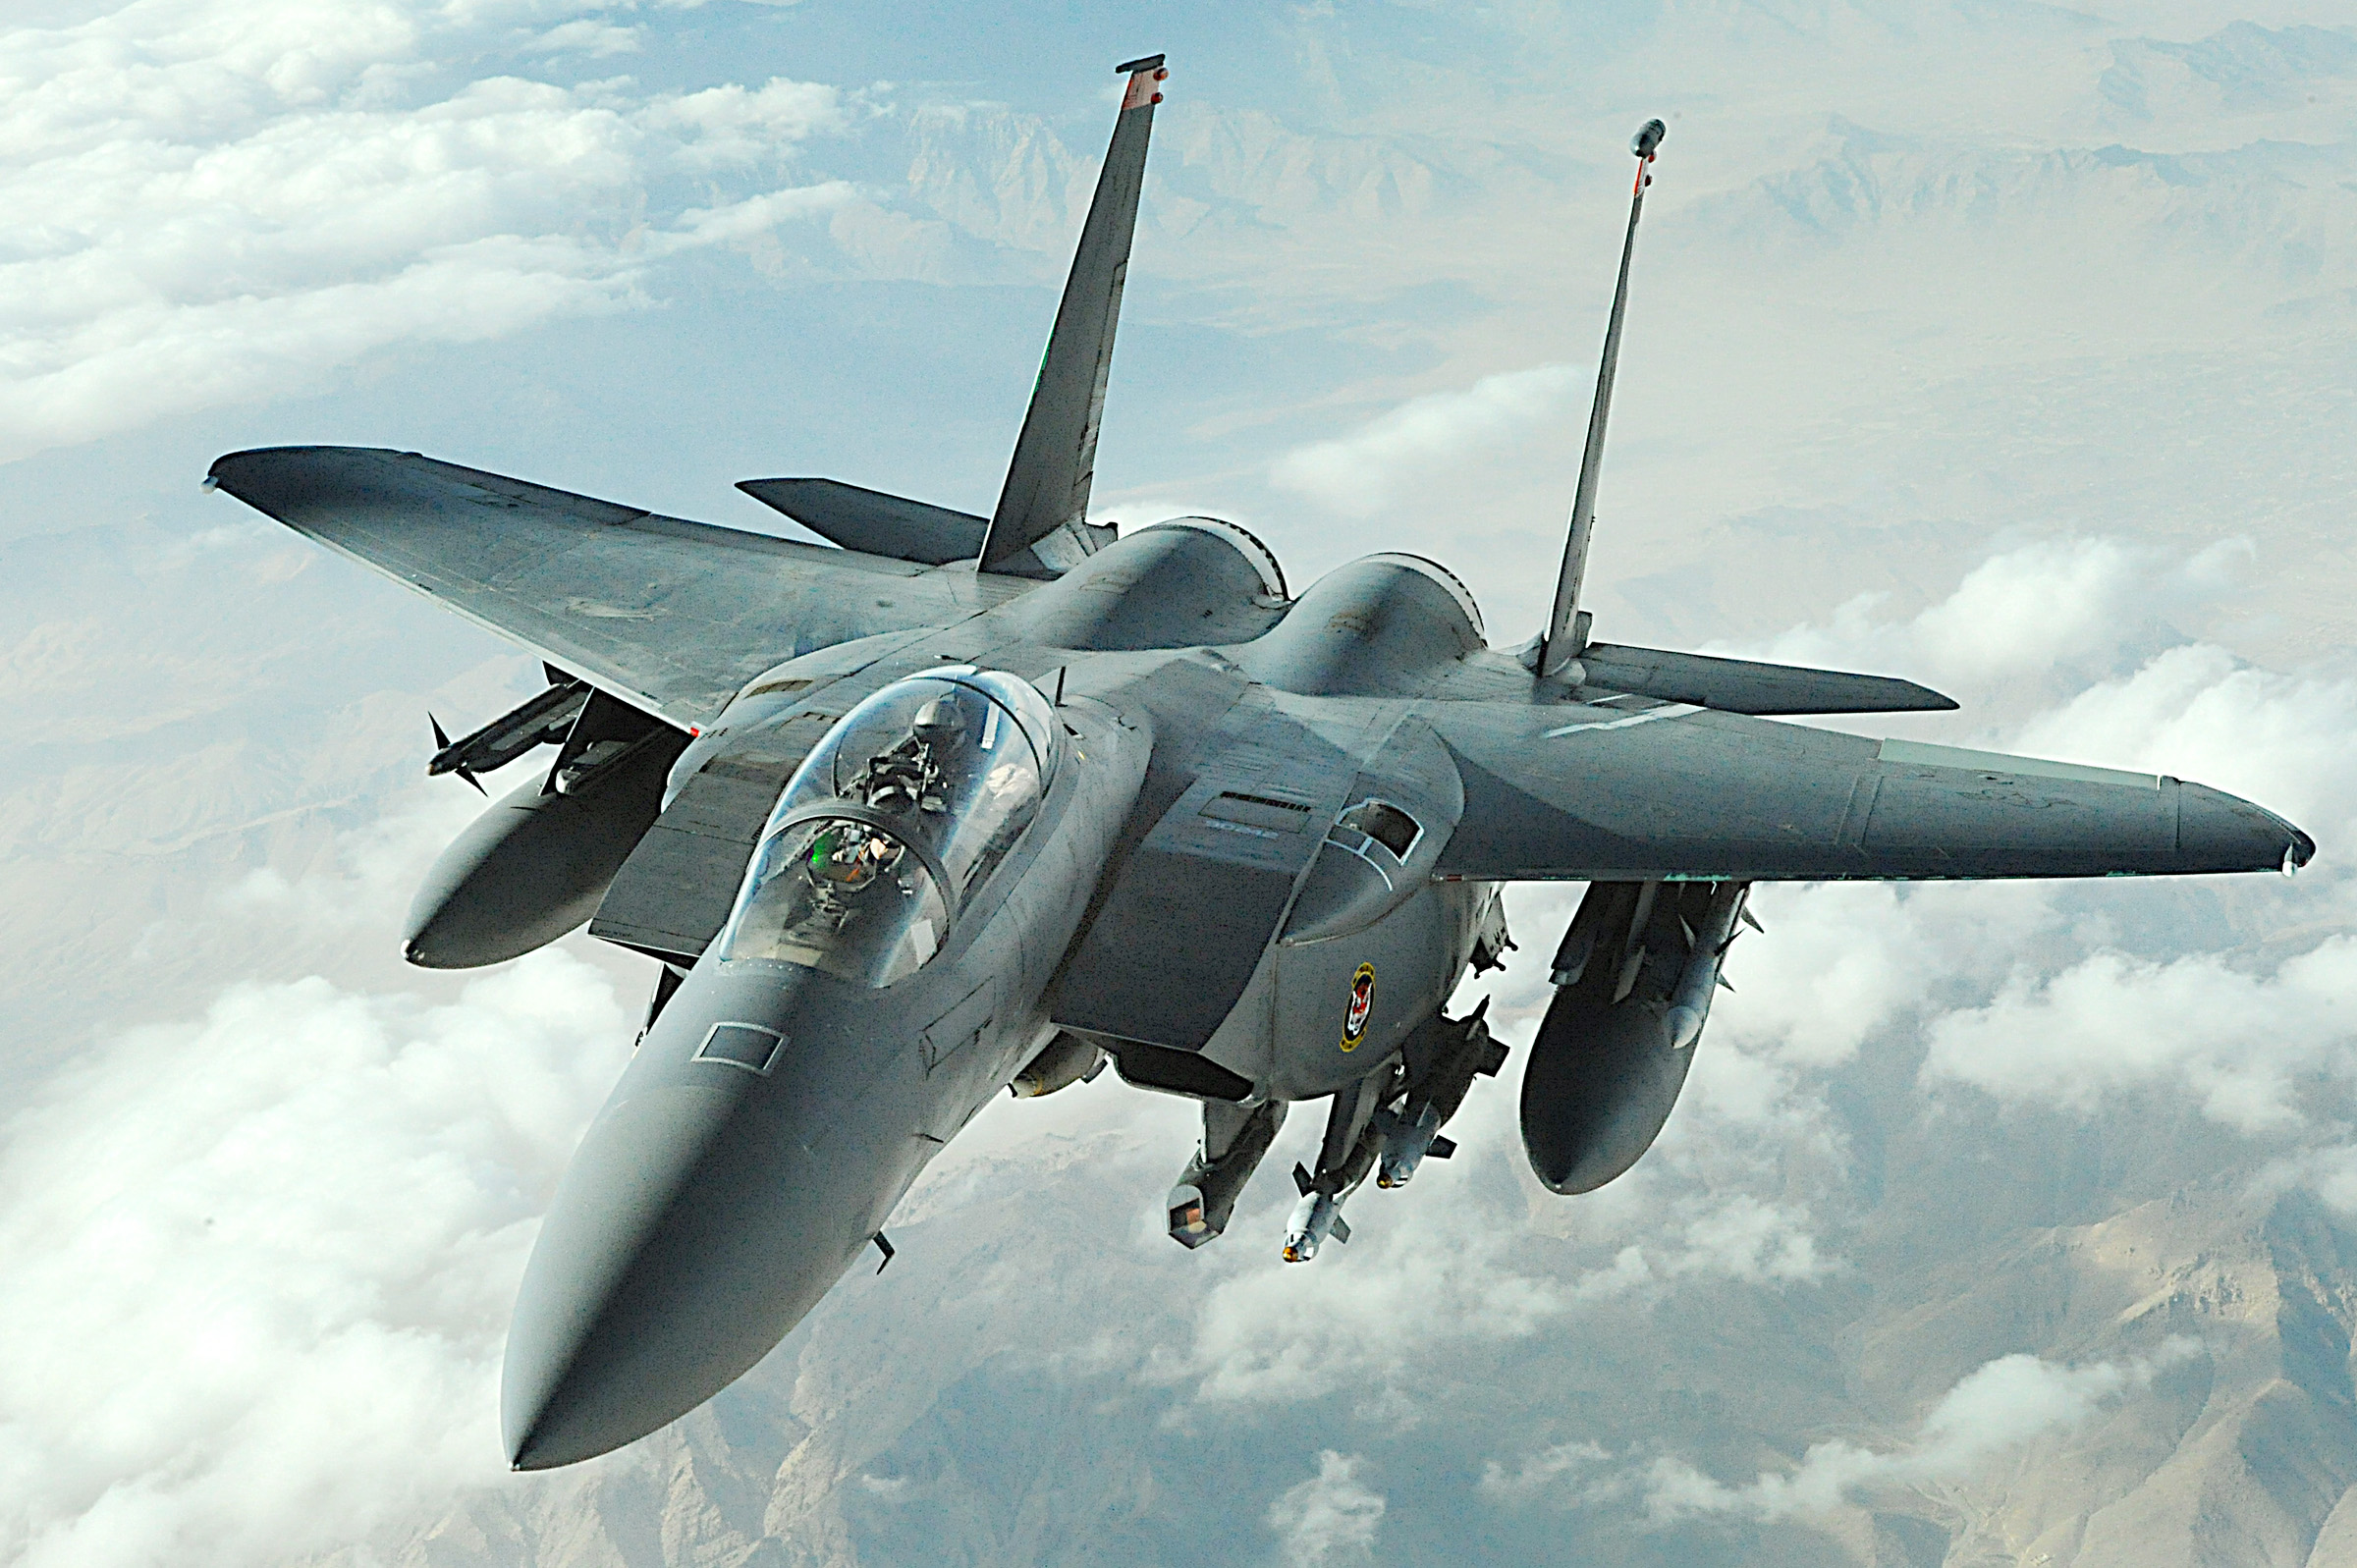 Aug. 3 airpower summary: F-15E provides cover for disabled convoy